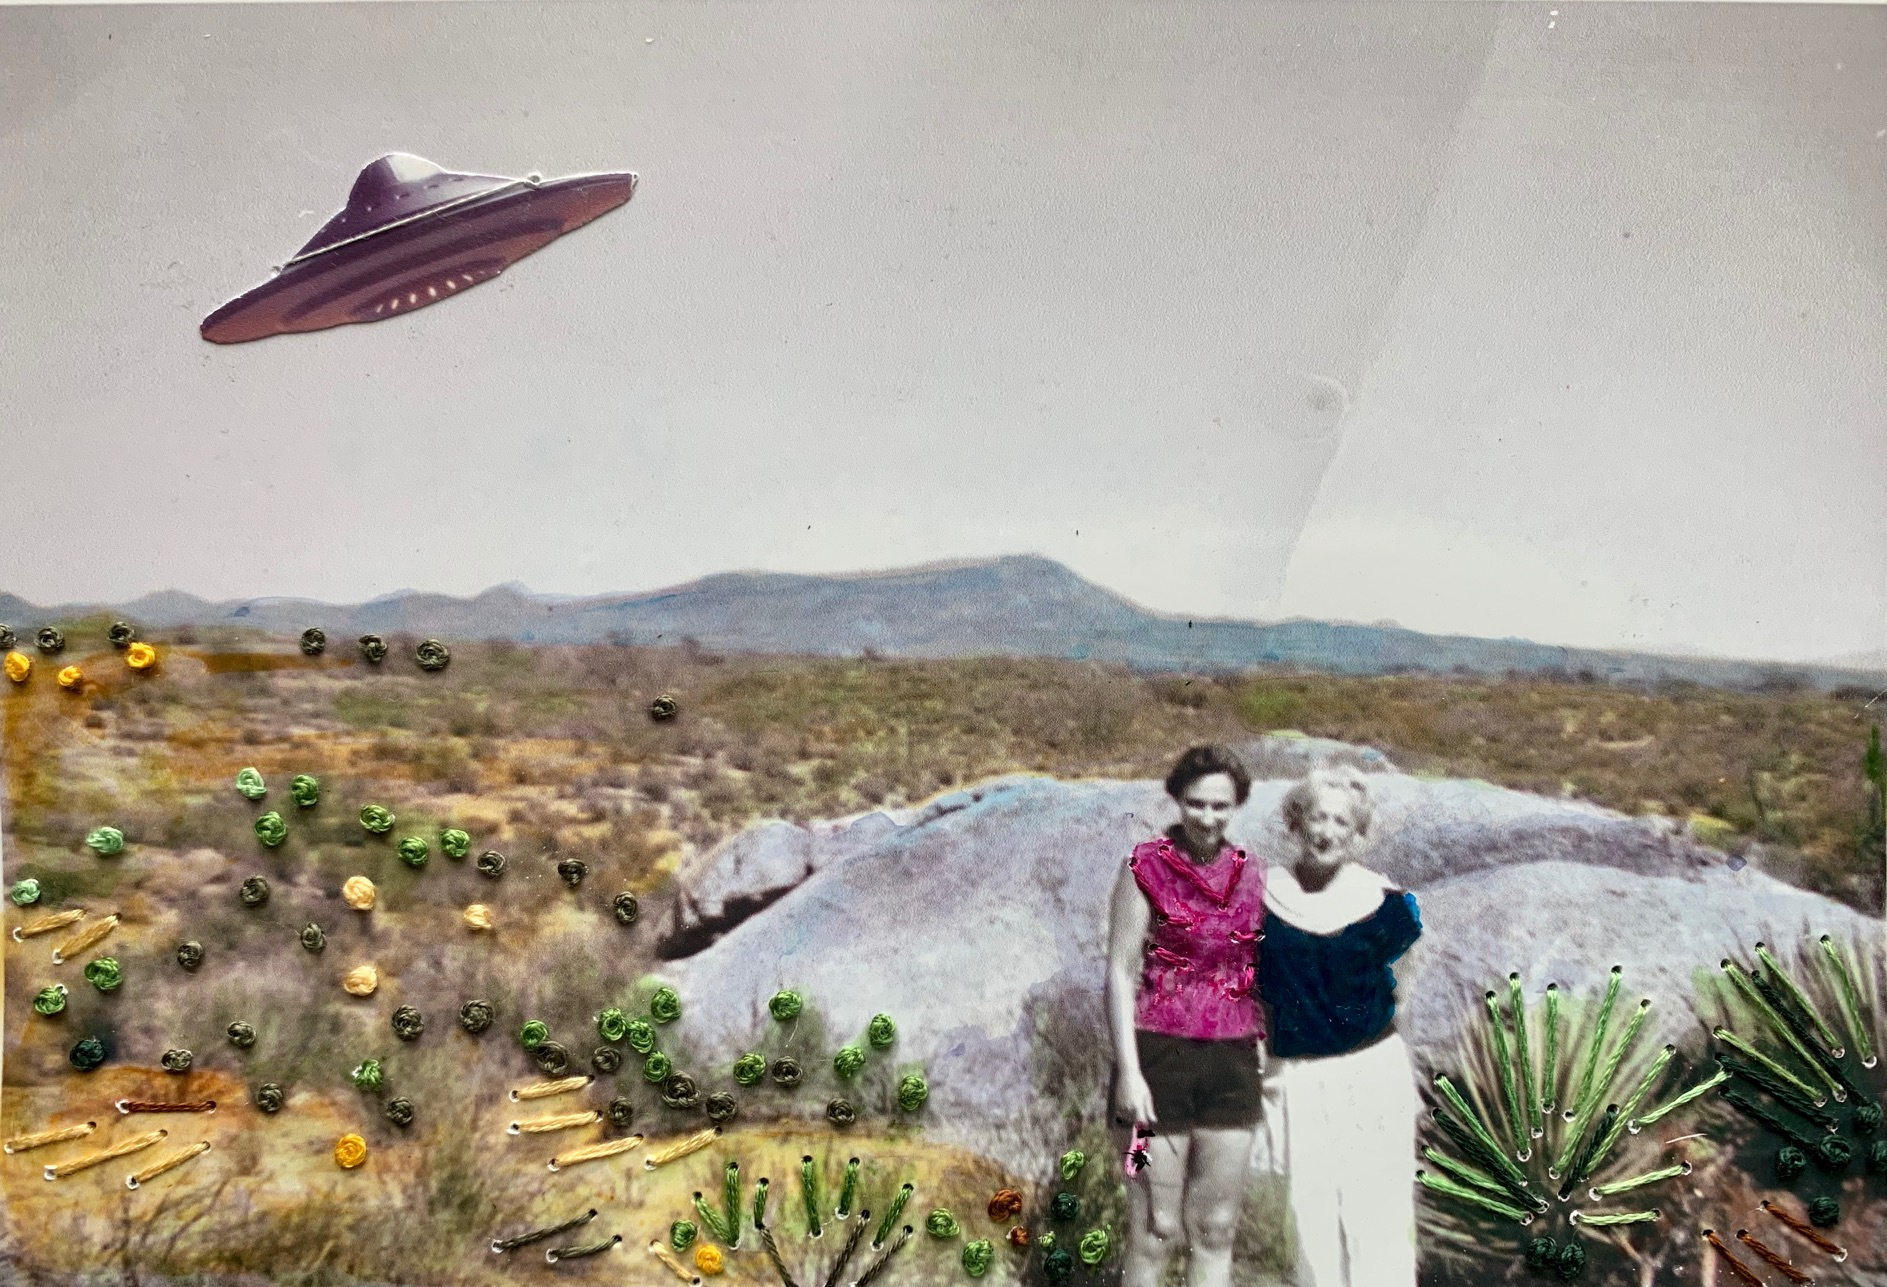 Outside Roswell, Ink, hand-embroidery, and collage on found photograph.